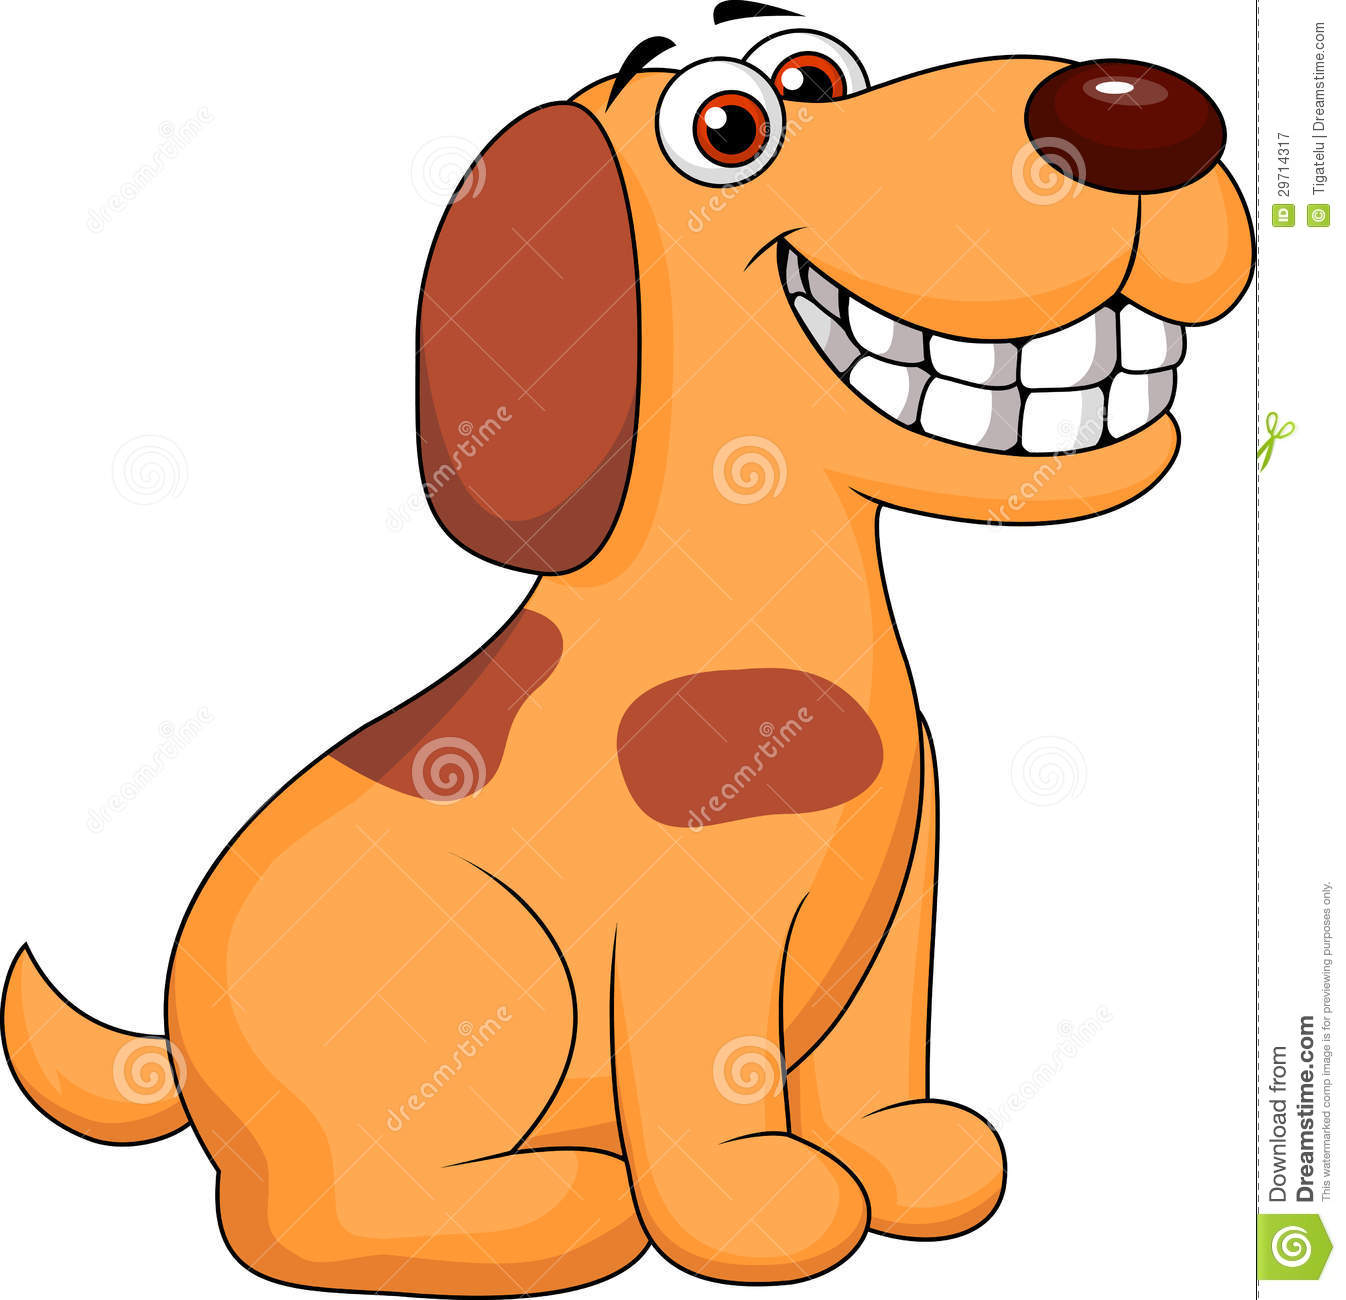 Dog smiling clipart.